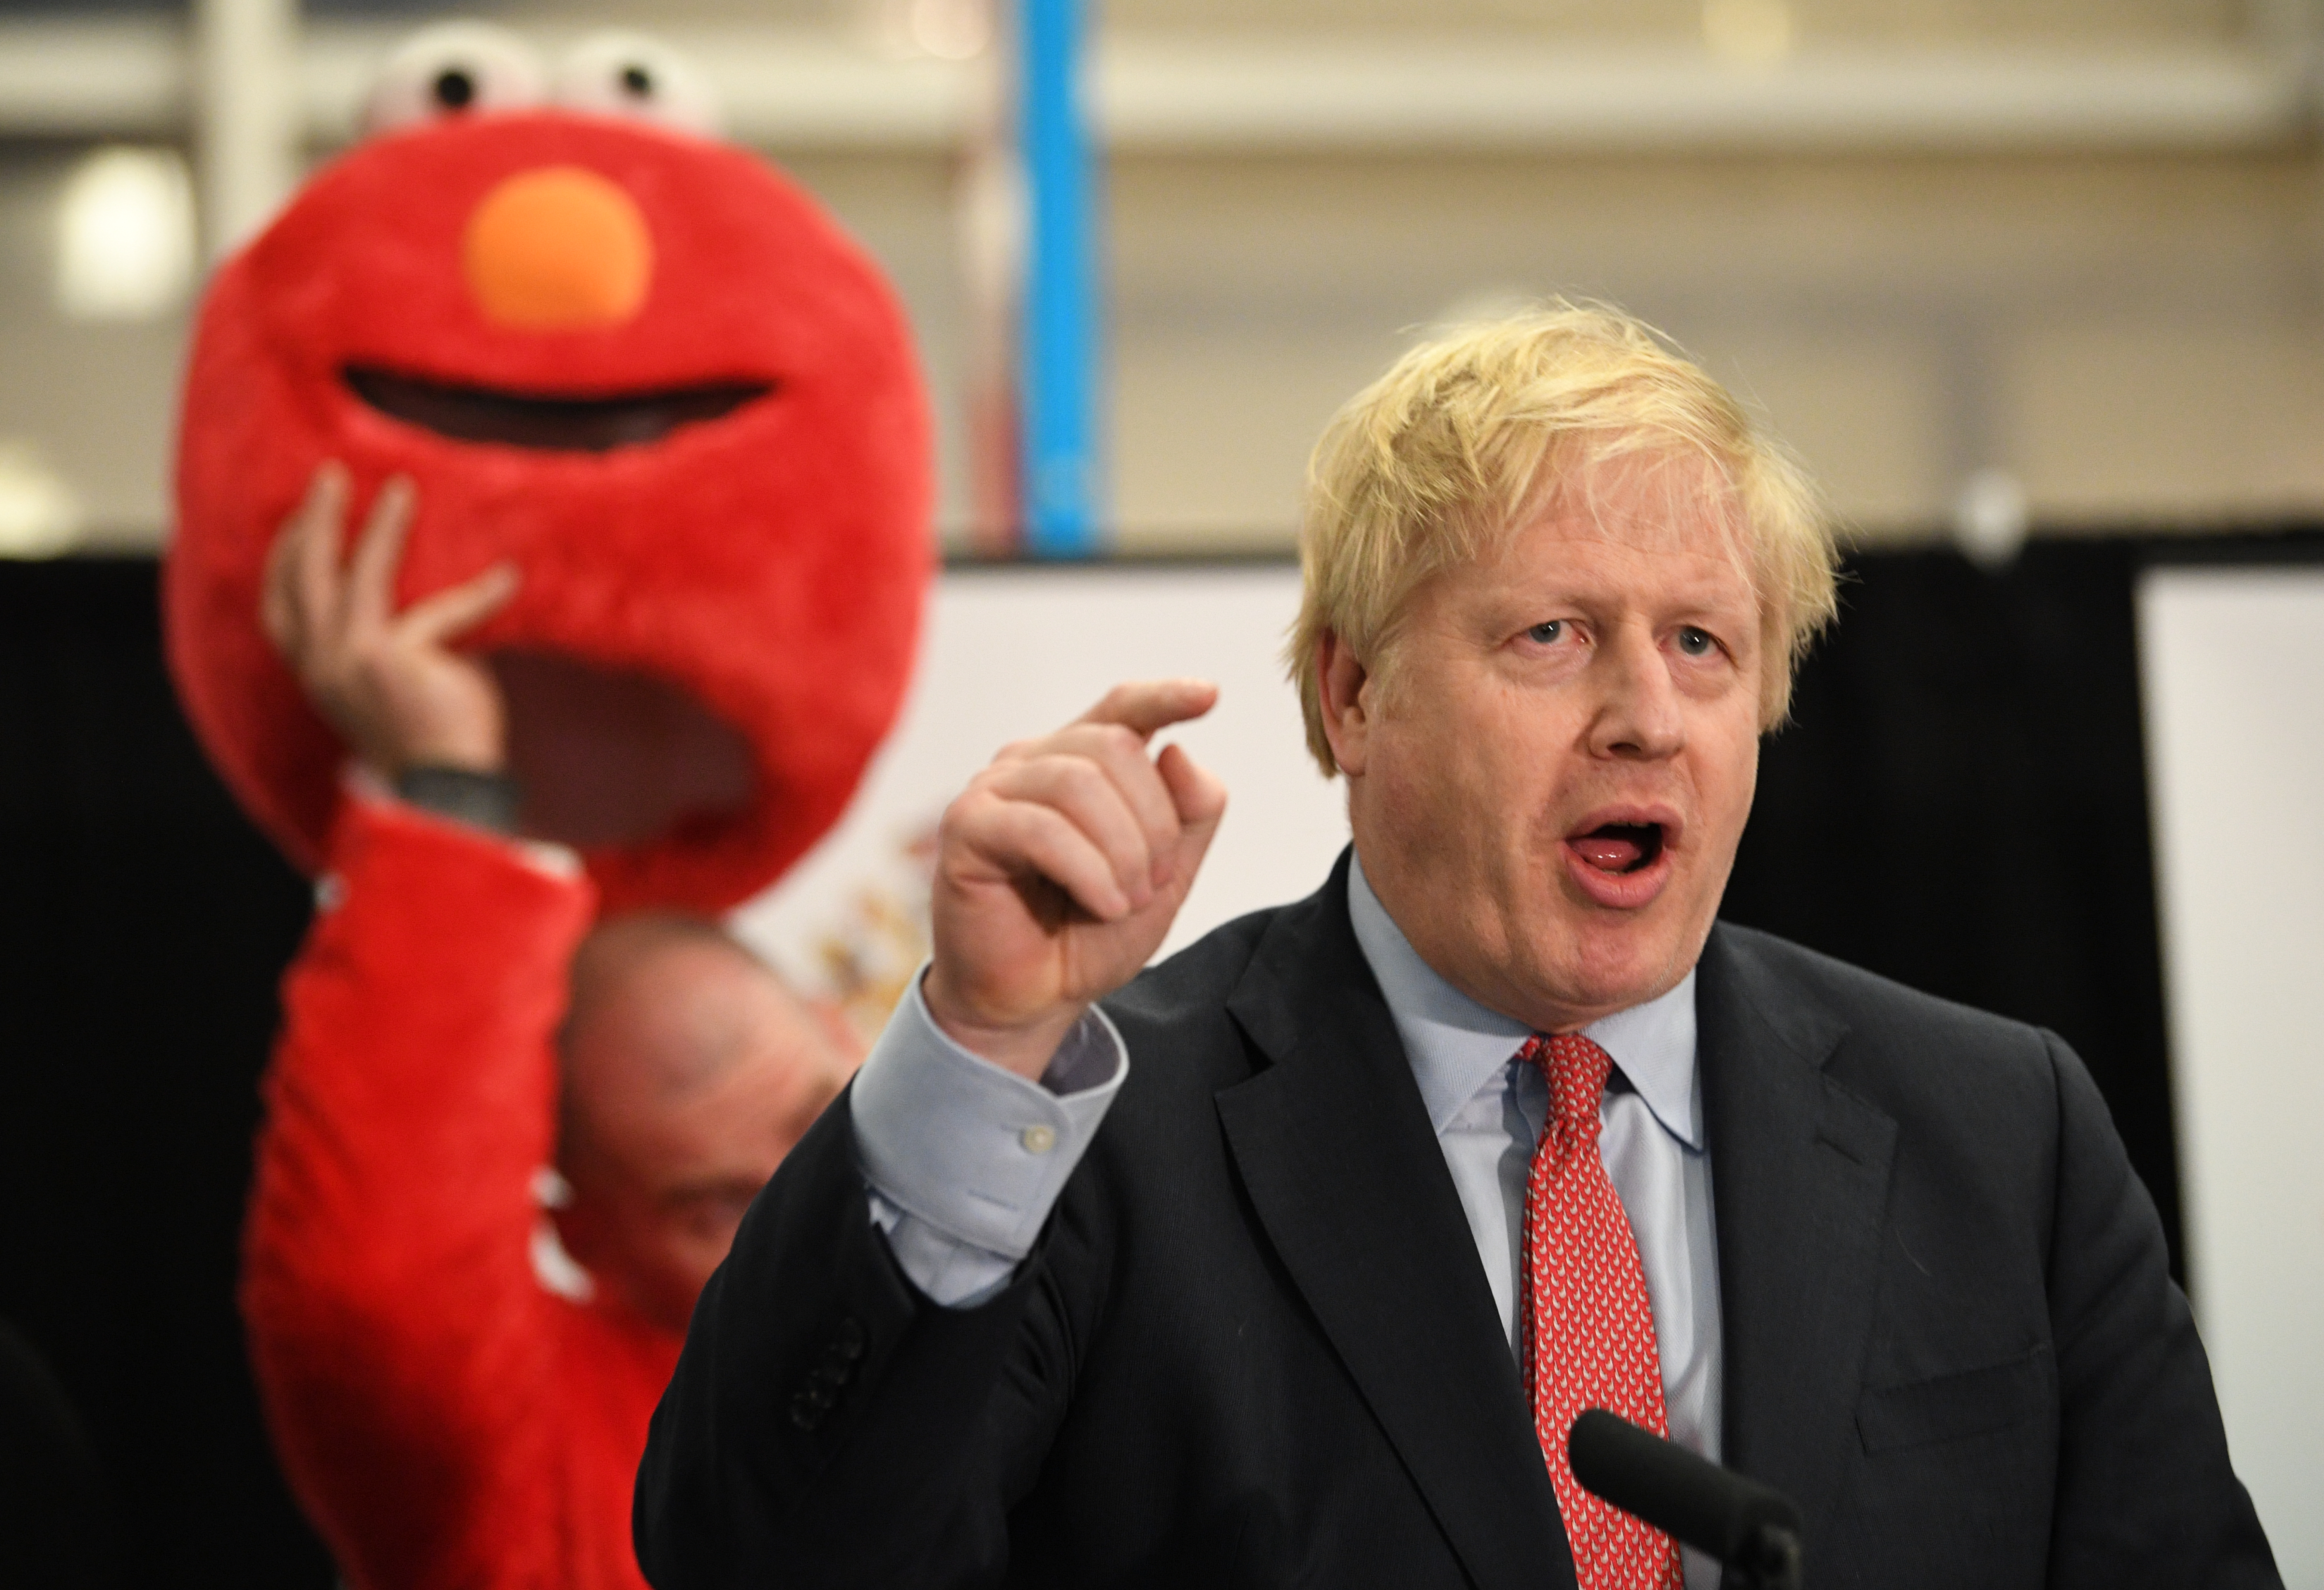 Prime Minister Boris Johnson giving his victory speech after winning the Uxbridge & Ruislip South constituency in the 2019 General Election. (Photo by Stefan Rousseau/PA Images via Getty Images)